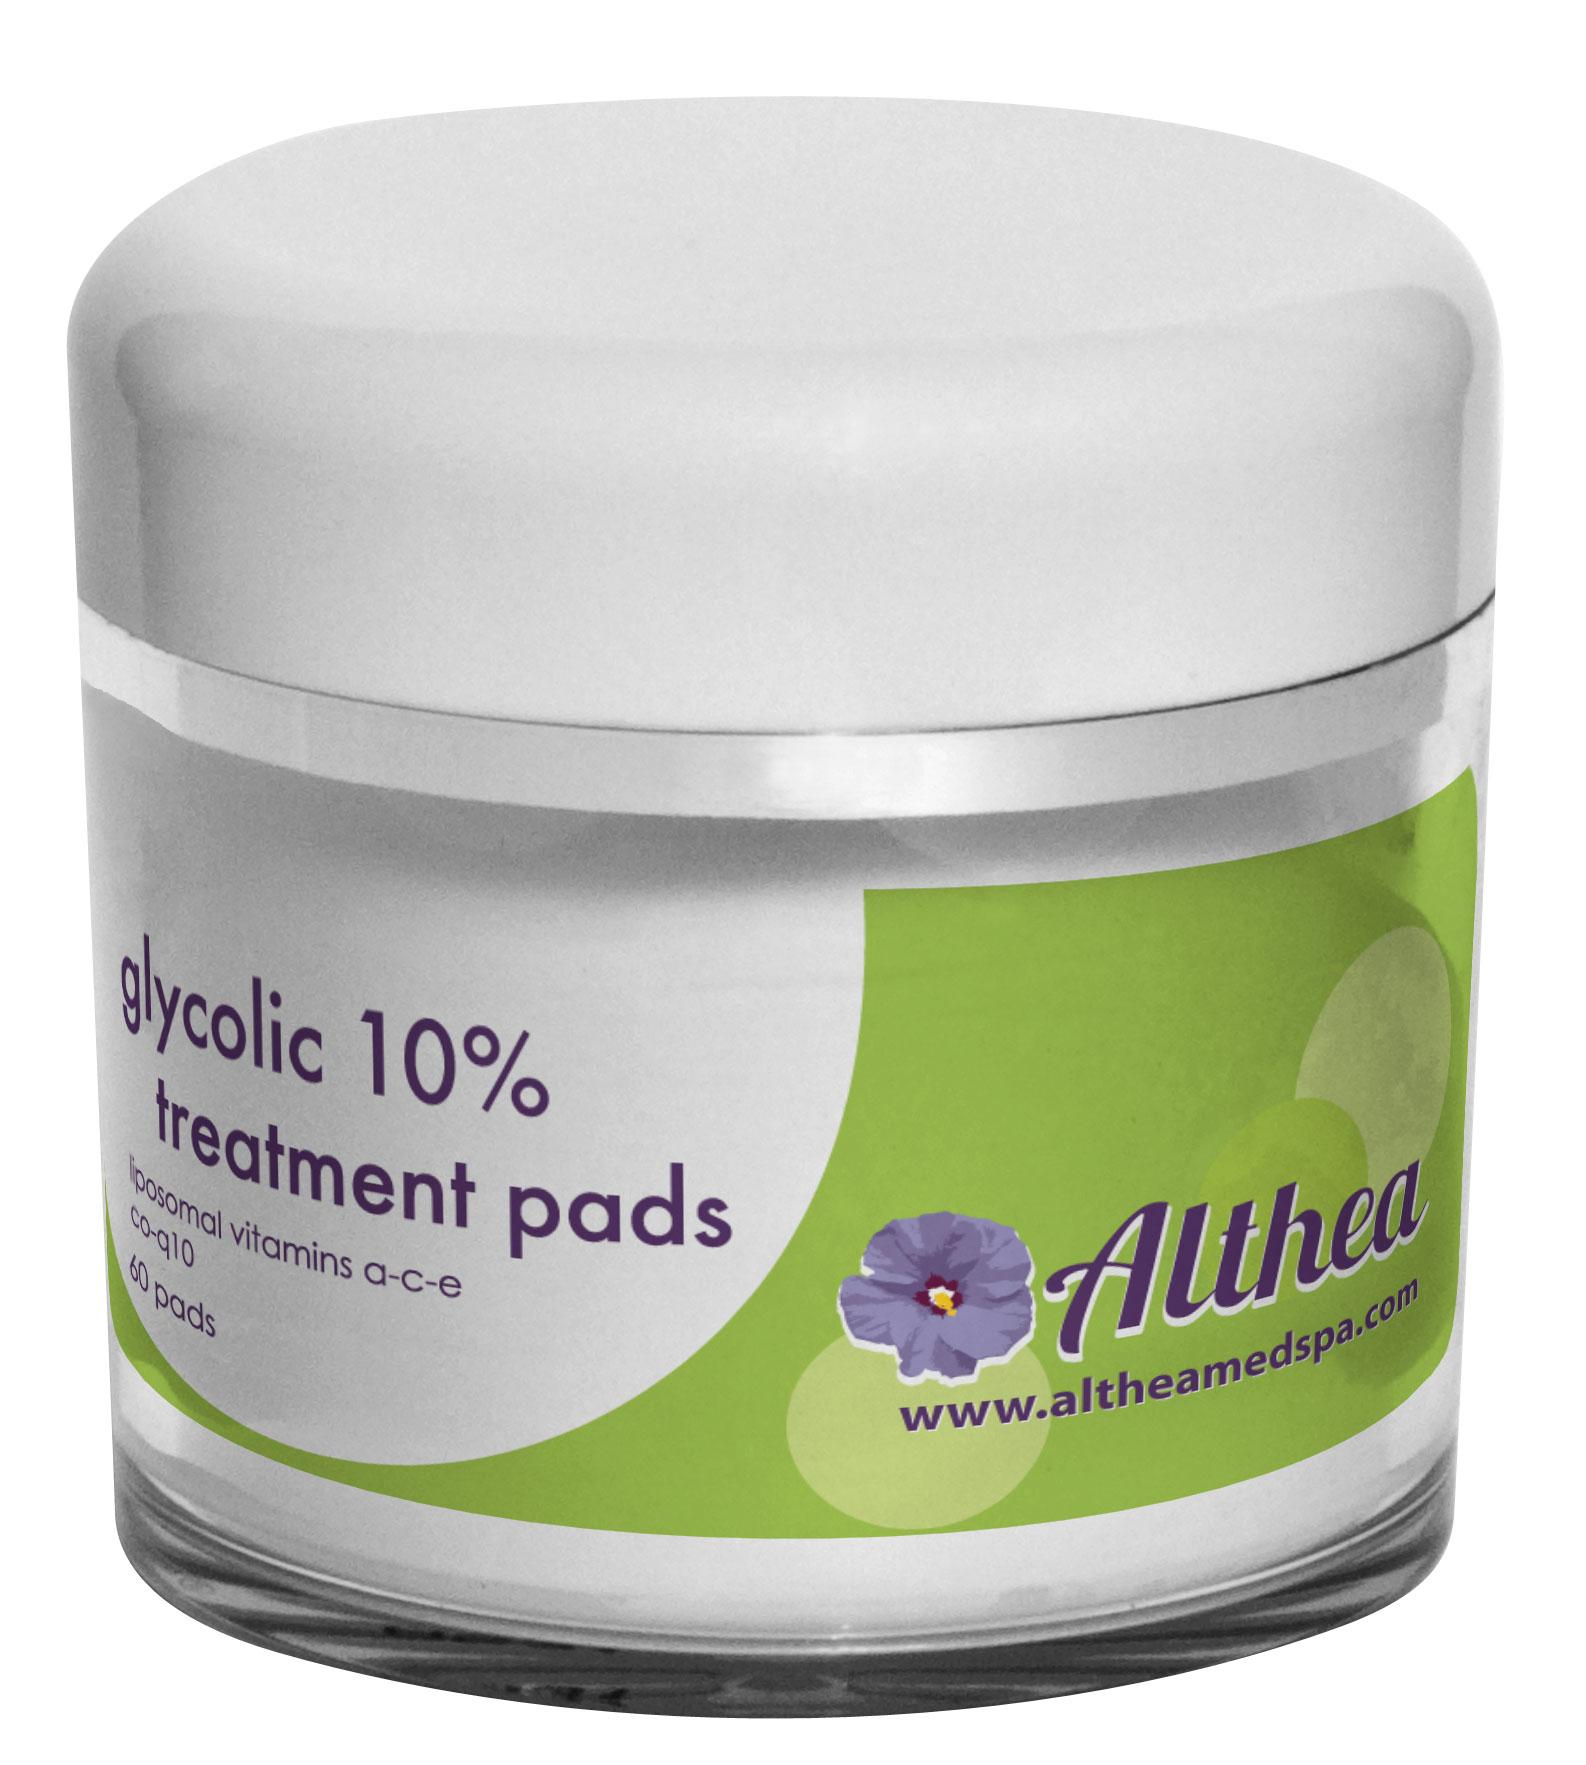 Glycolic 10% Treatment Pads